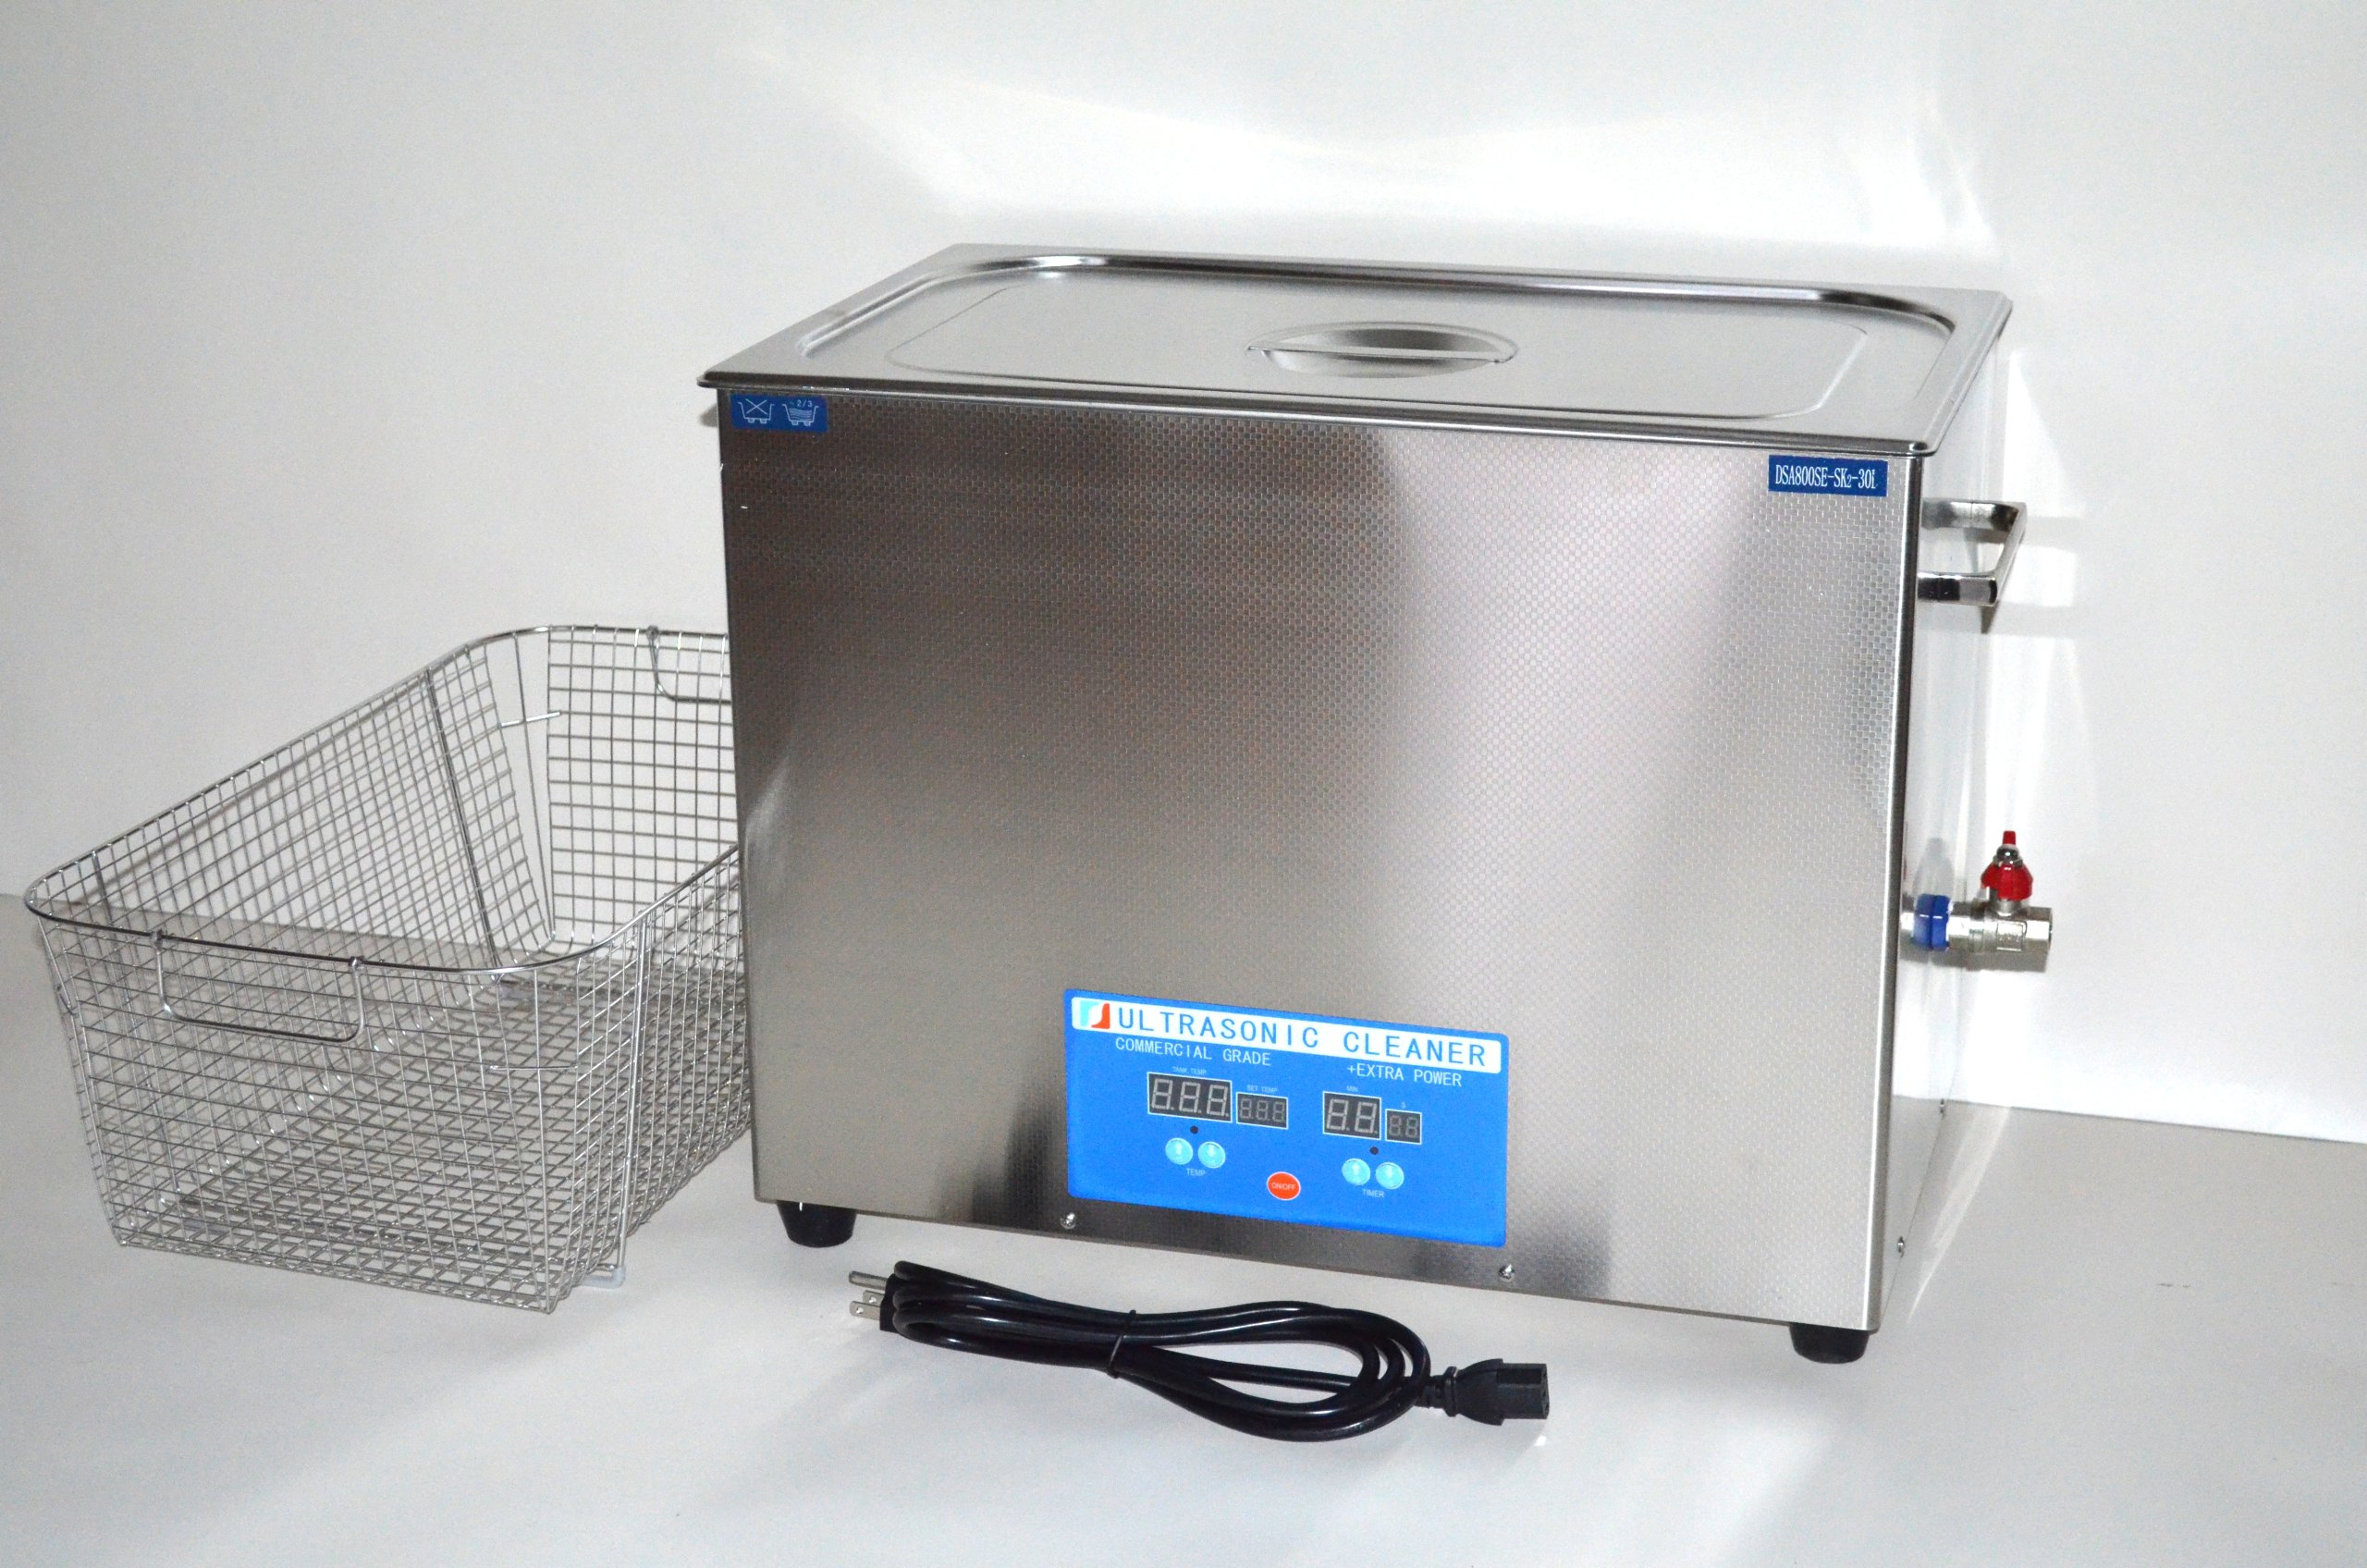 ''COMMERCIAL+ EXTRA POWER'' SERIES DSA800SE-SK2 30L (8 GAL) 1600 WATTS 40KHz DIGITAL HEATED INDUSTRIAL STAINLESS STEEL ULTRASONIC PARTS CLEANER MACHINE WITH INBOARD BASKET AND TOP COVER LID